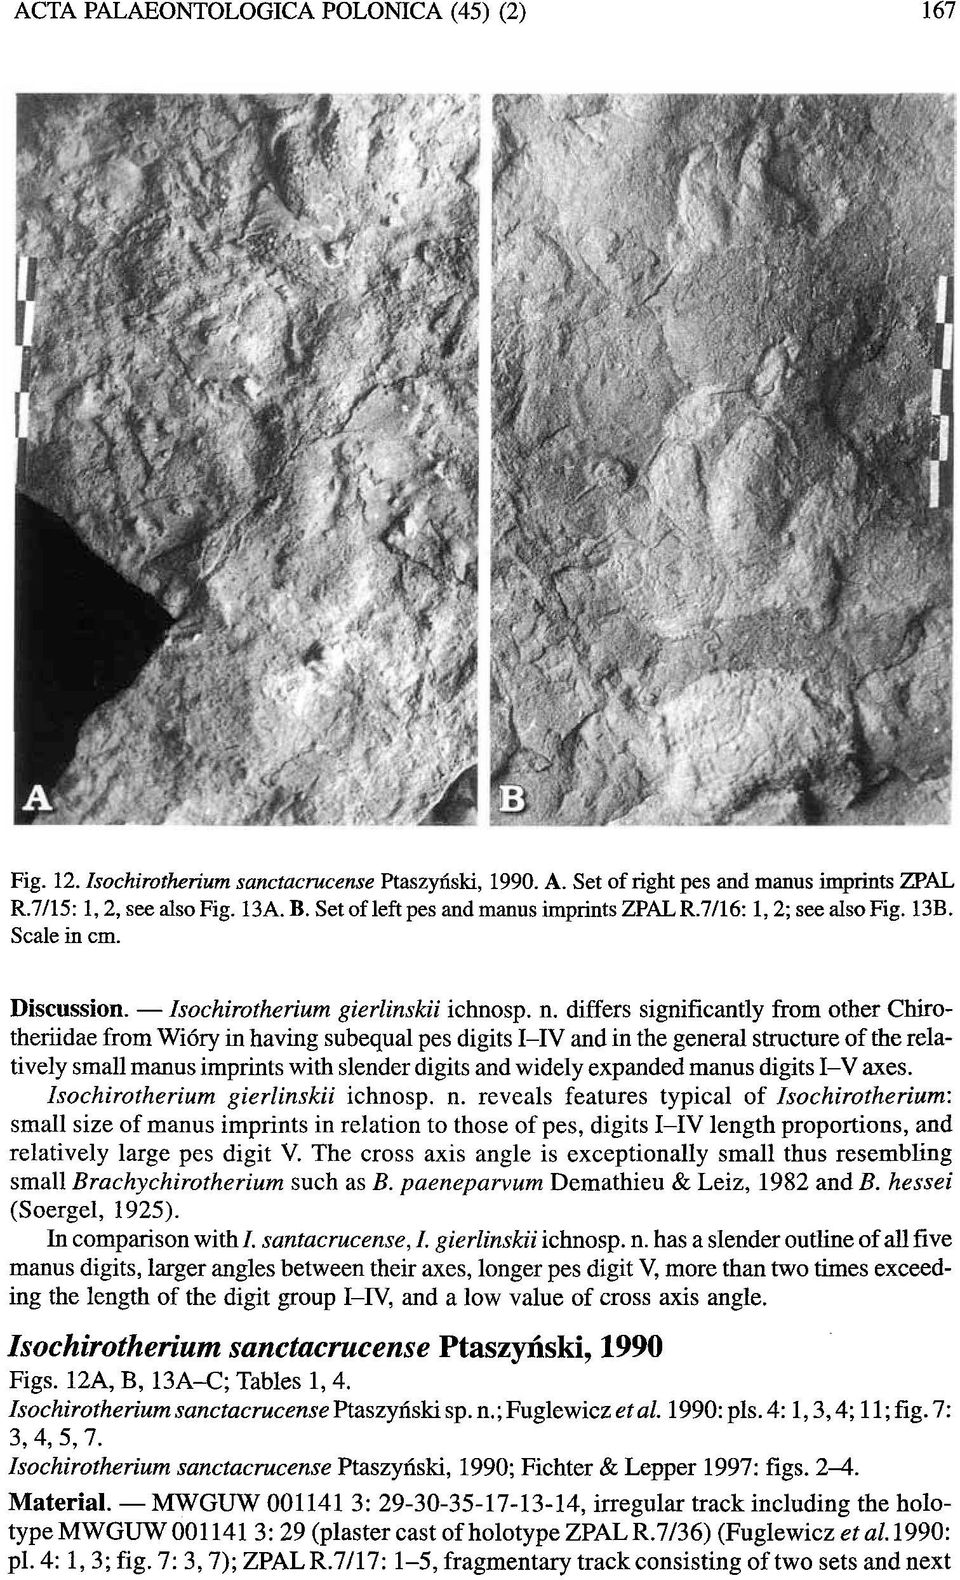 differs significantly from other Chirotheriidae from Wi6ry in having subequal pes digits I-IV and in the general structure of the relatively small manus imprints with slender digits and widely